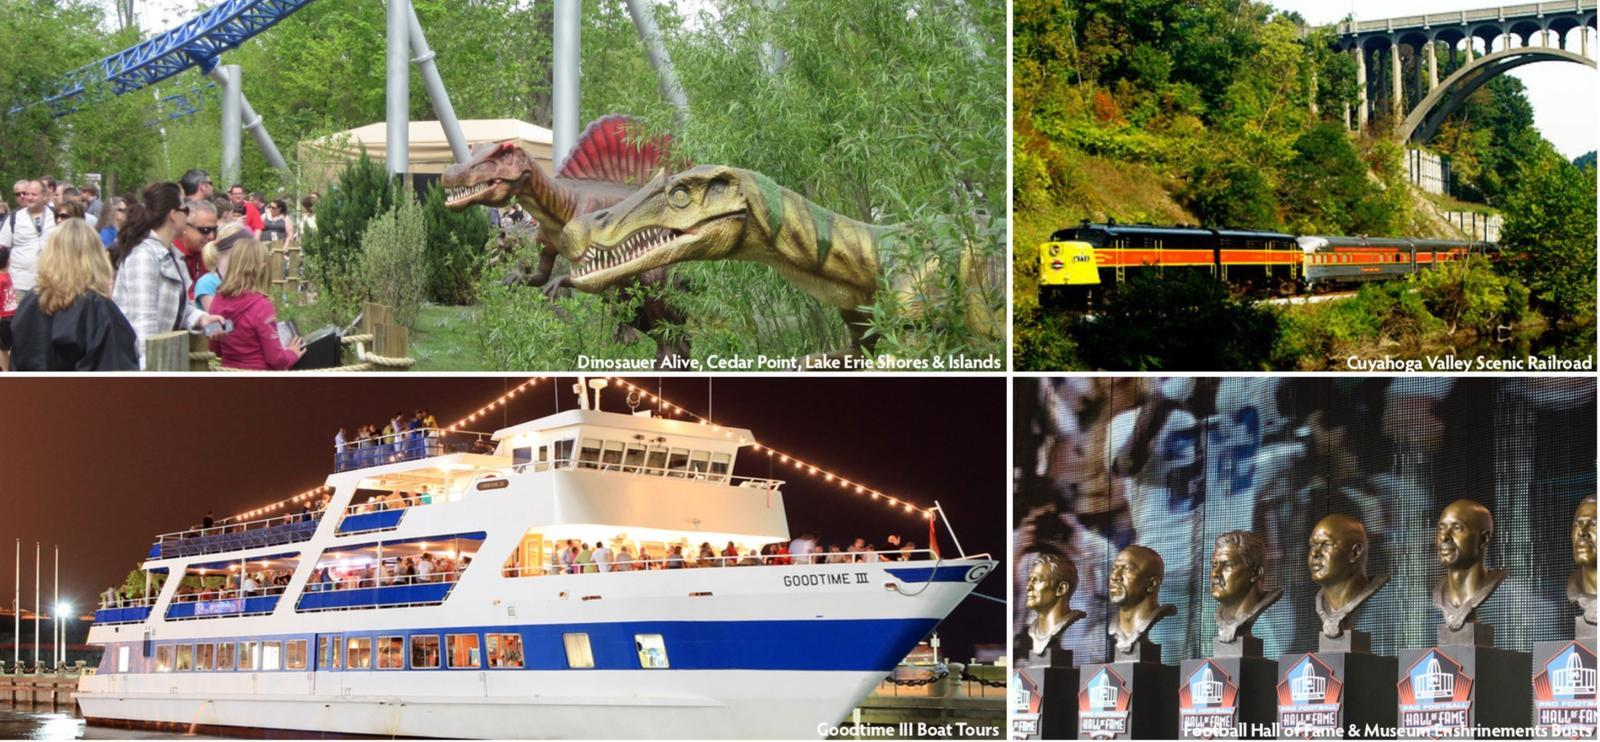 Clockwise from Top Left: Dinosauer Alive, Cedar Point, Lake Erie Shores & Islands; Cuyahoga Valley Scenic Railroad; Goodtime III Boat Tours; Football Hall of Fame & Museum Enshrinement Busts